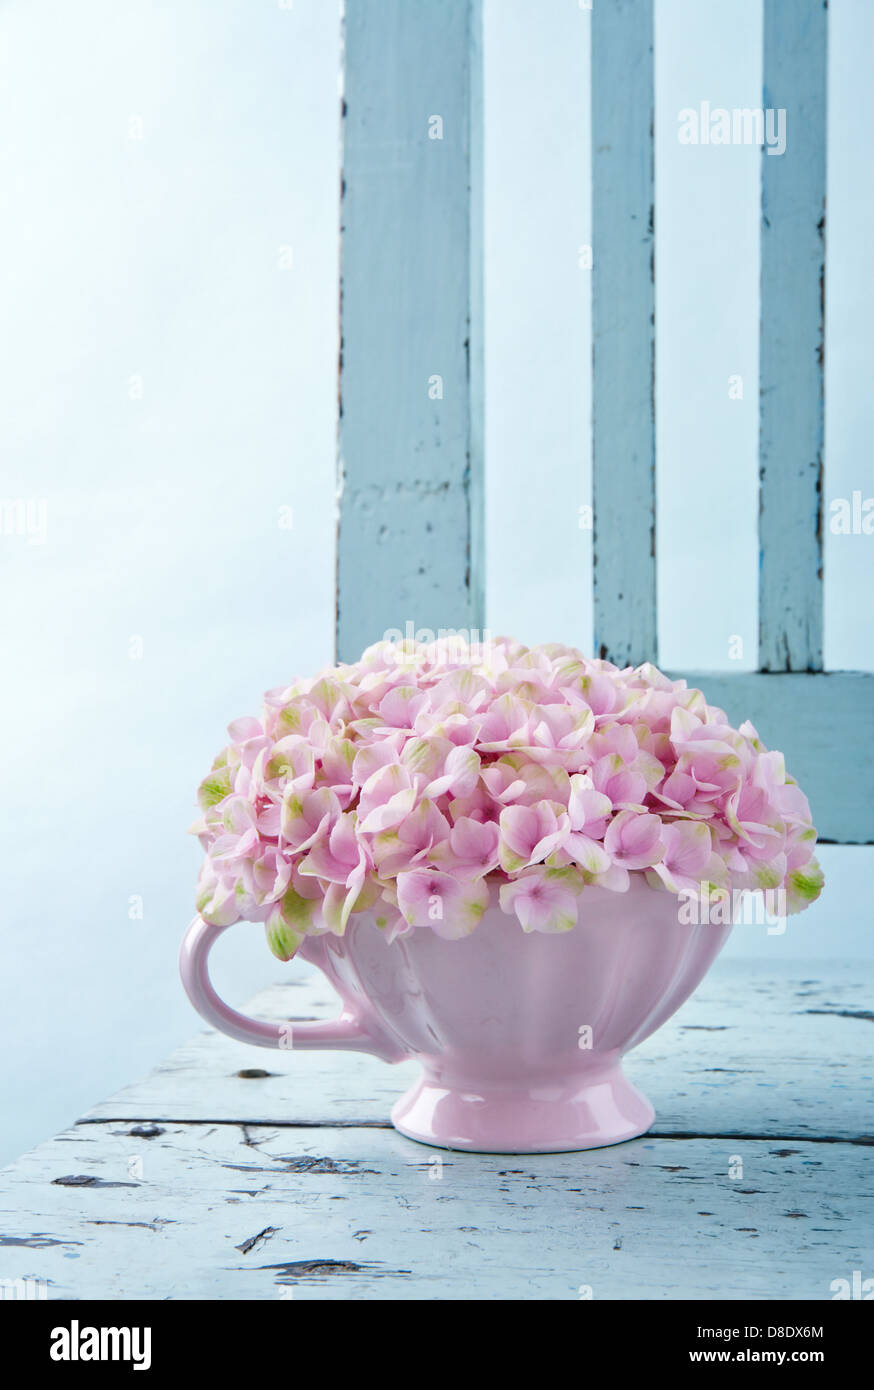 Cup full of pink hydrangea flowers on blue old shabby chic vintage chair - Stock Image